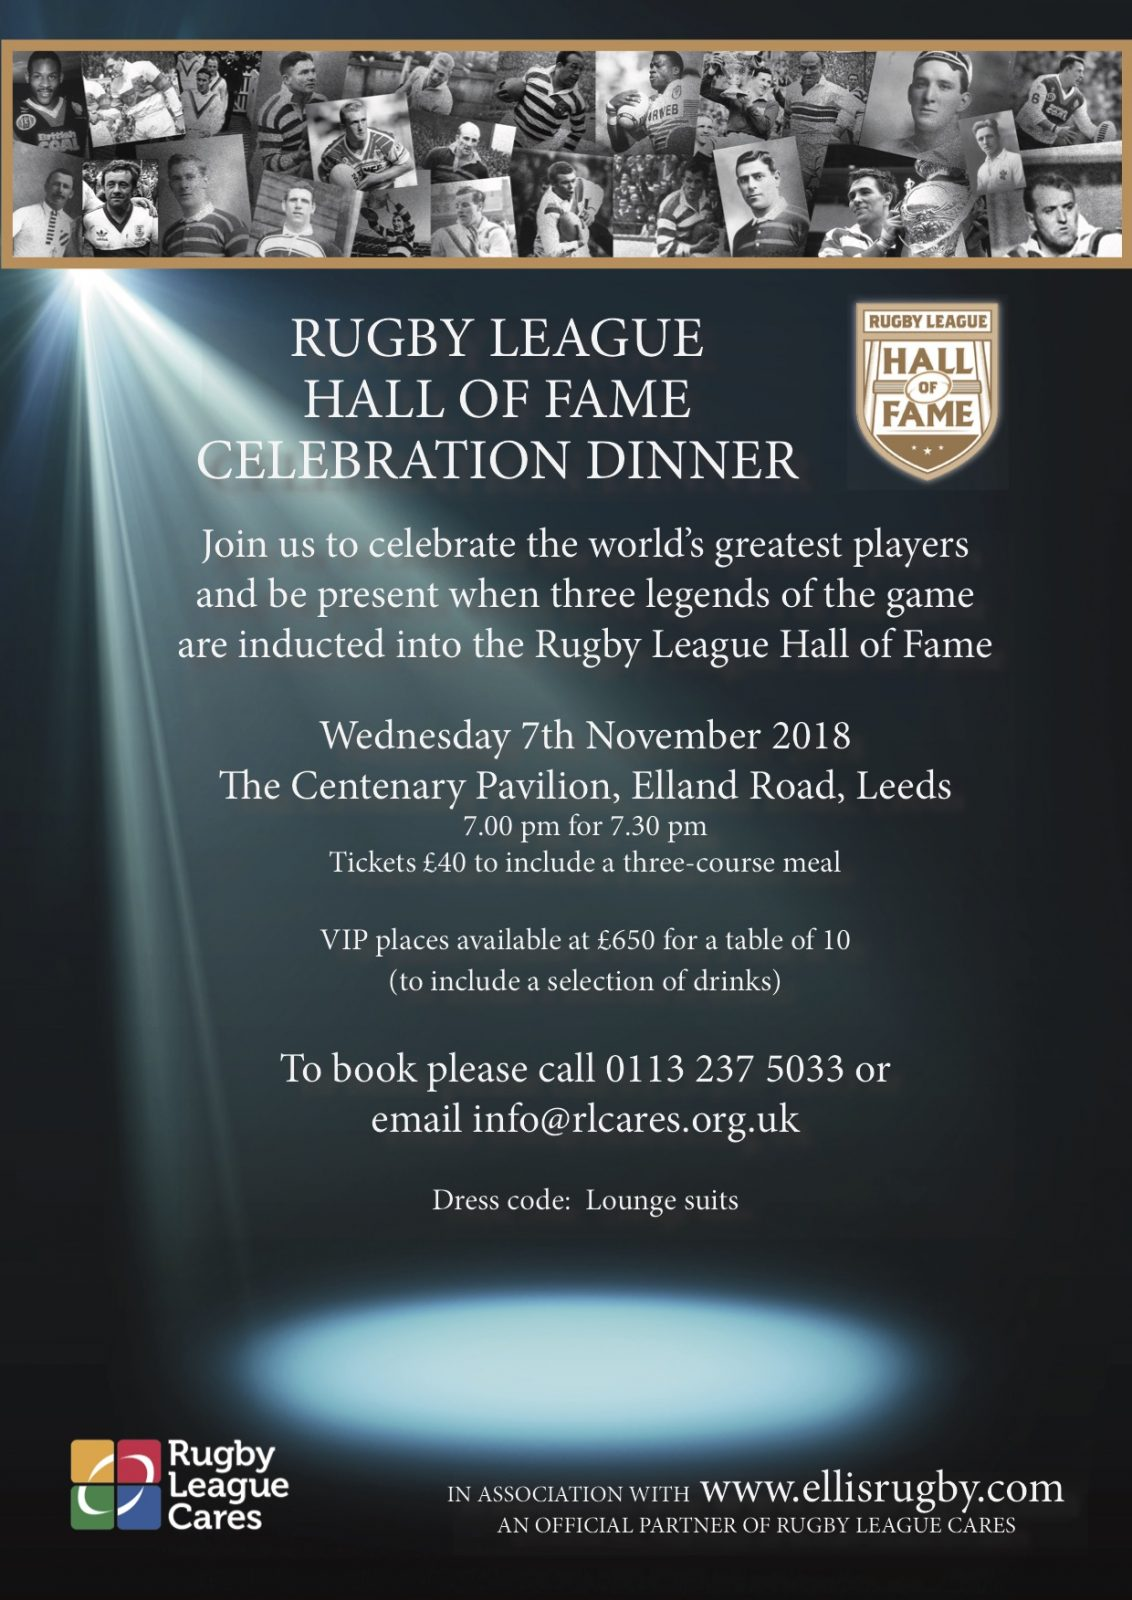 Tickets now on sale for historic Rugby League Hall of Fame dinner